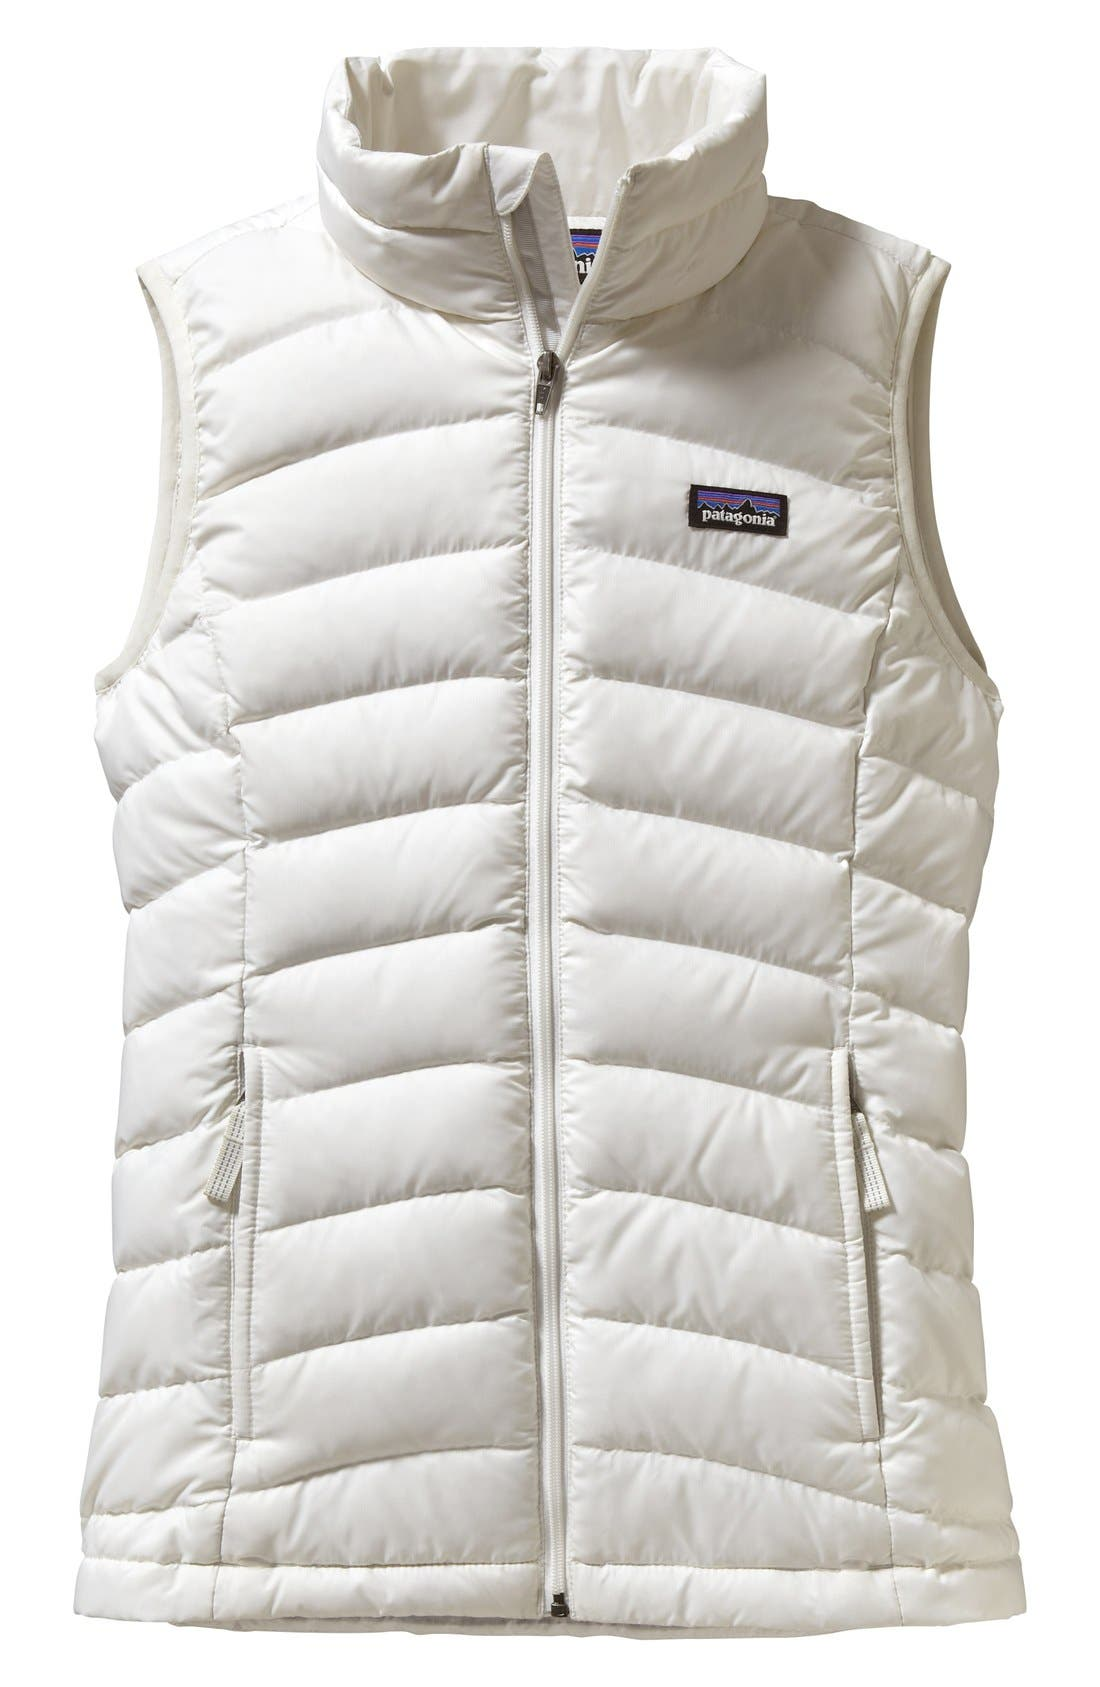 Alternate Image 1 Selected - Patagonia Windproof & Water Resistant Down Sweater Vest (Little Girls & Big Girls)